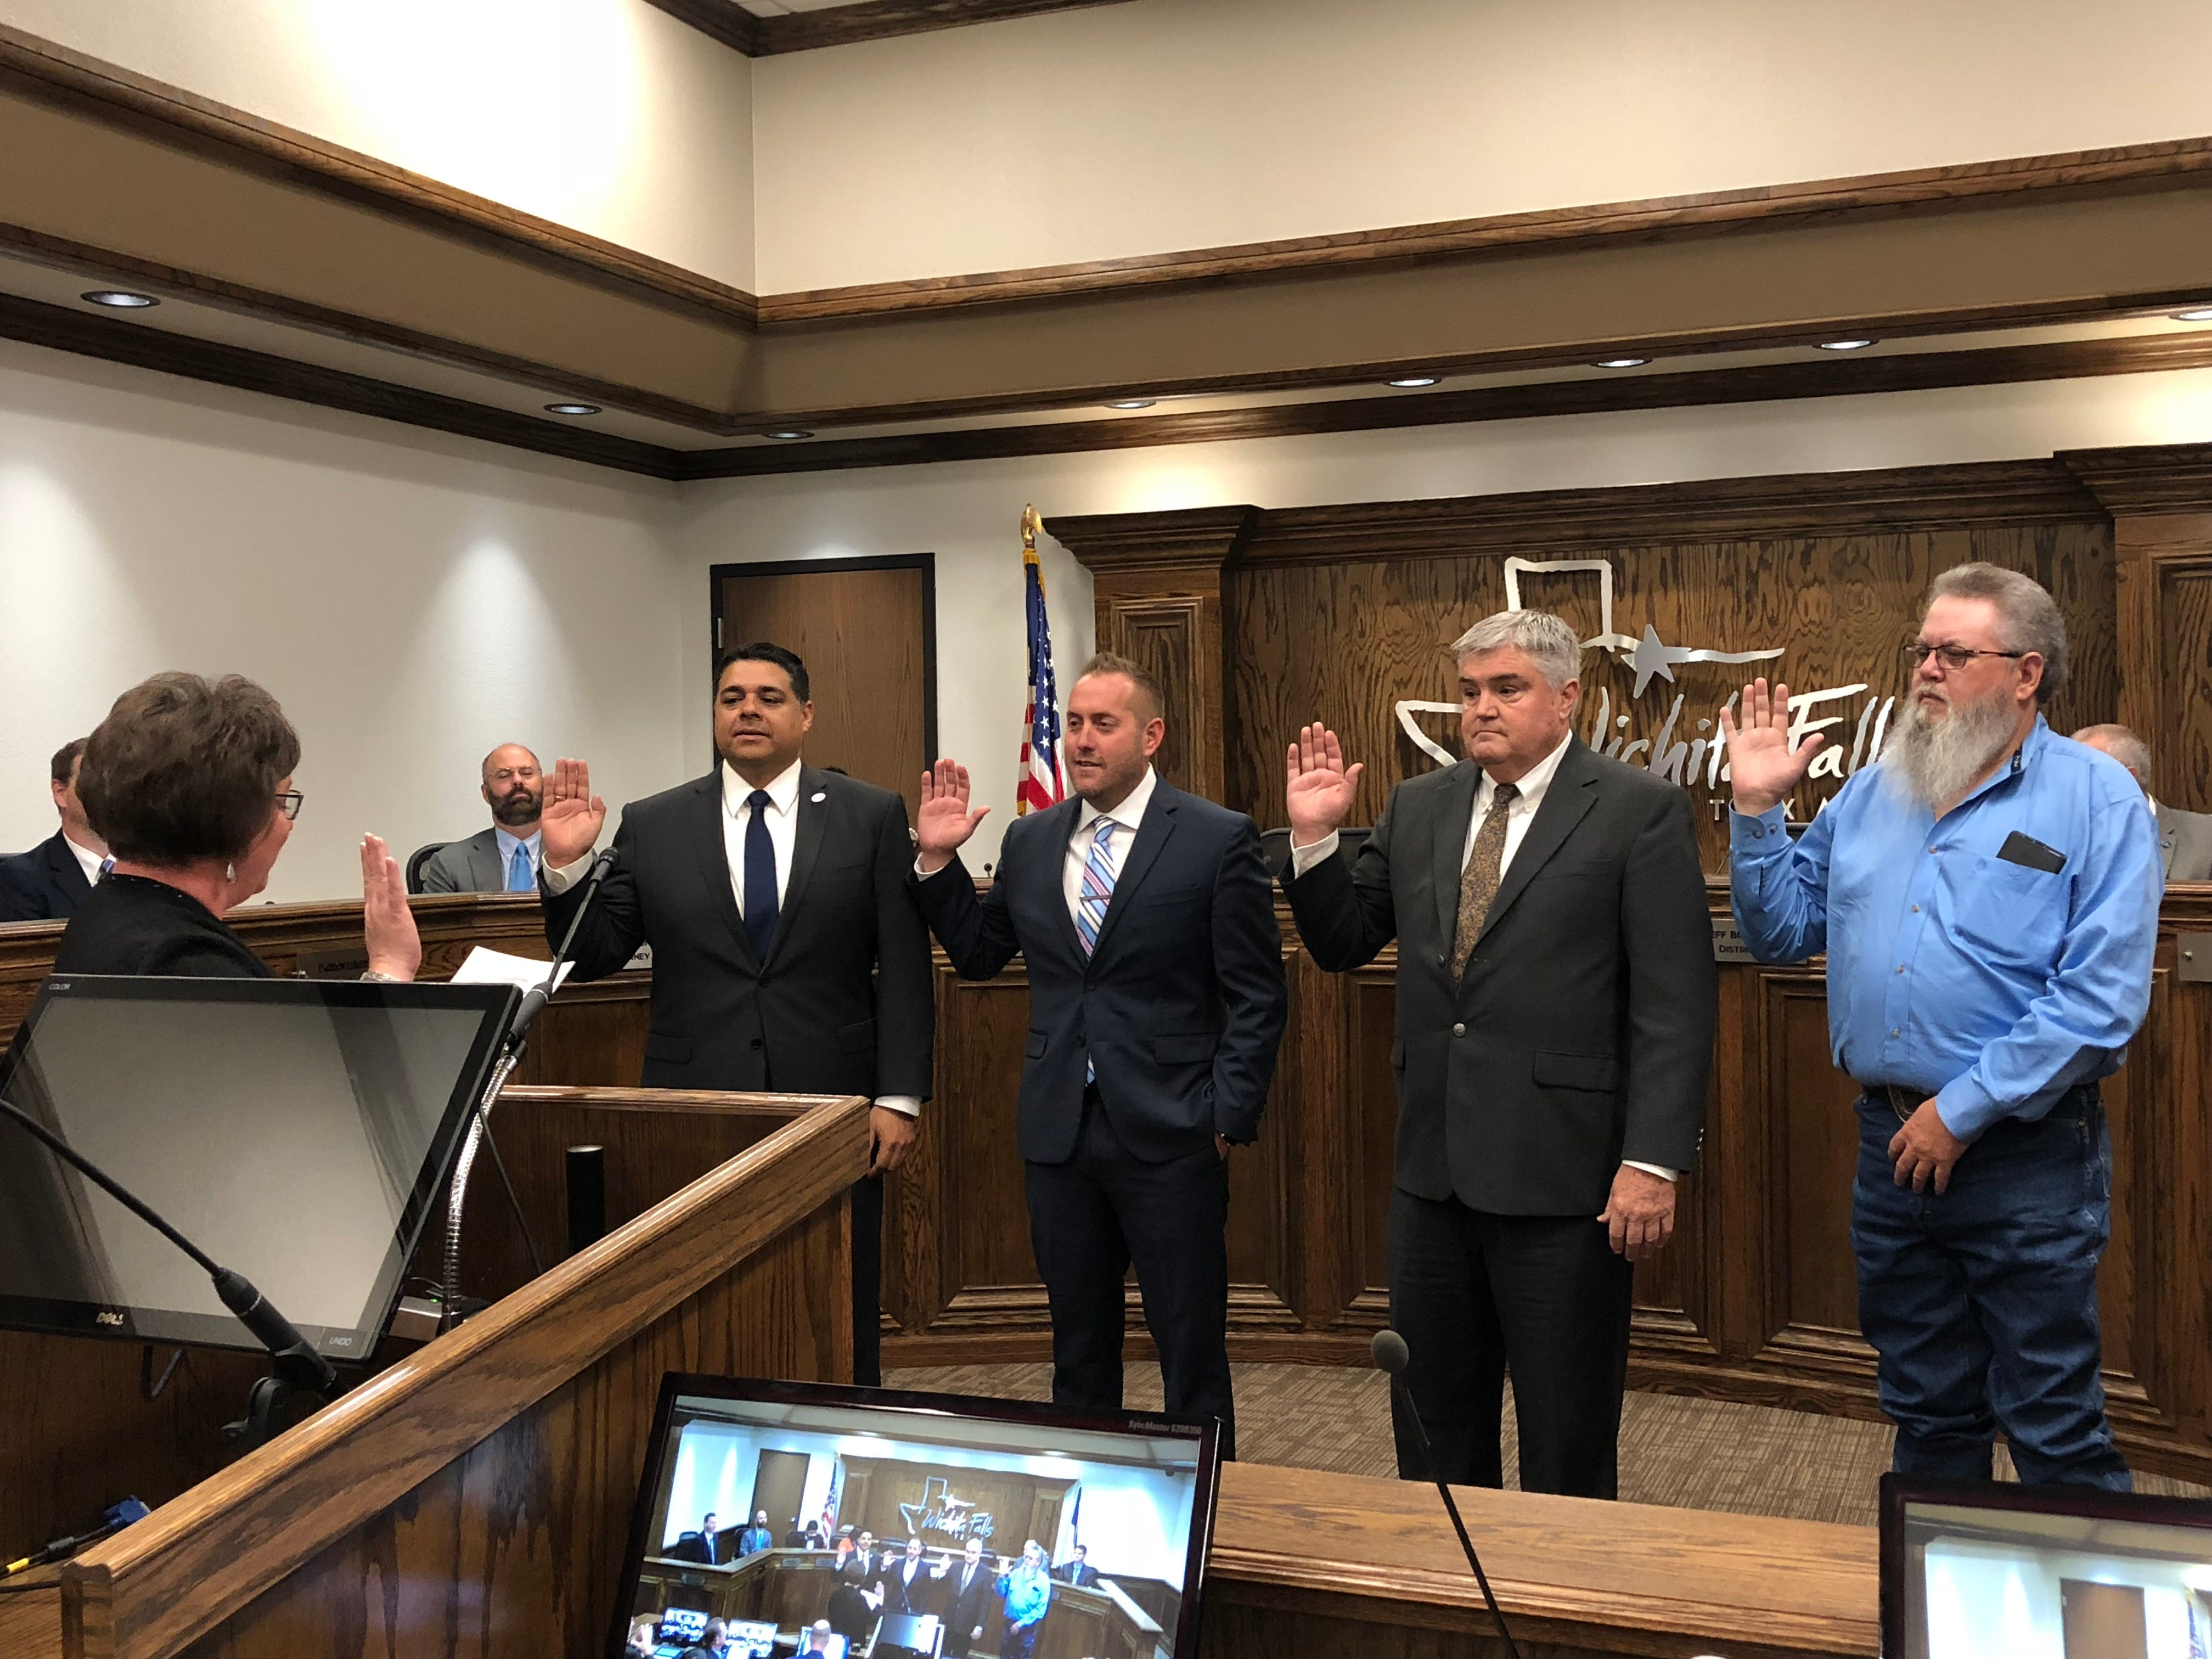 Newly elected and re-elected city officials talk the oath of office with Marie Balthrop, city clerk, left, on Tuesday. From left are Mayor Stephen Santellana, Jeff Browning, Tim Brewer, and Steve Jackson.